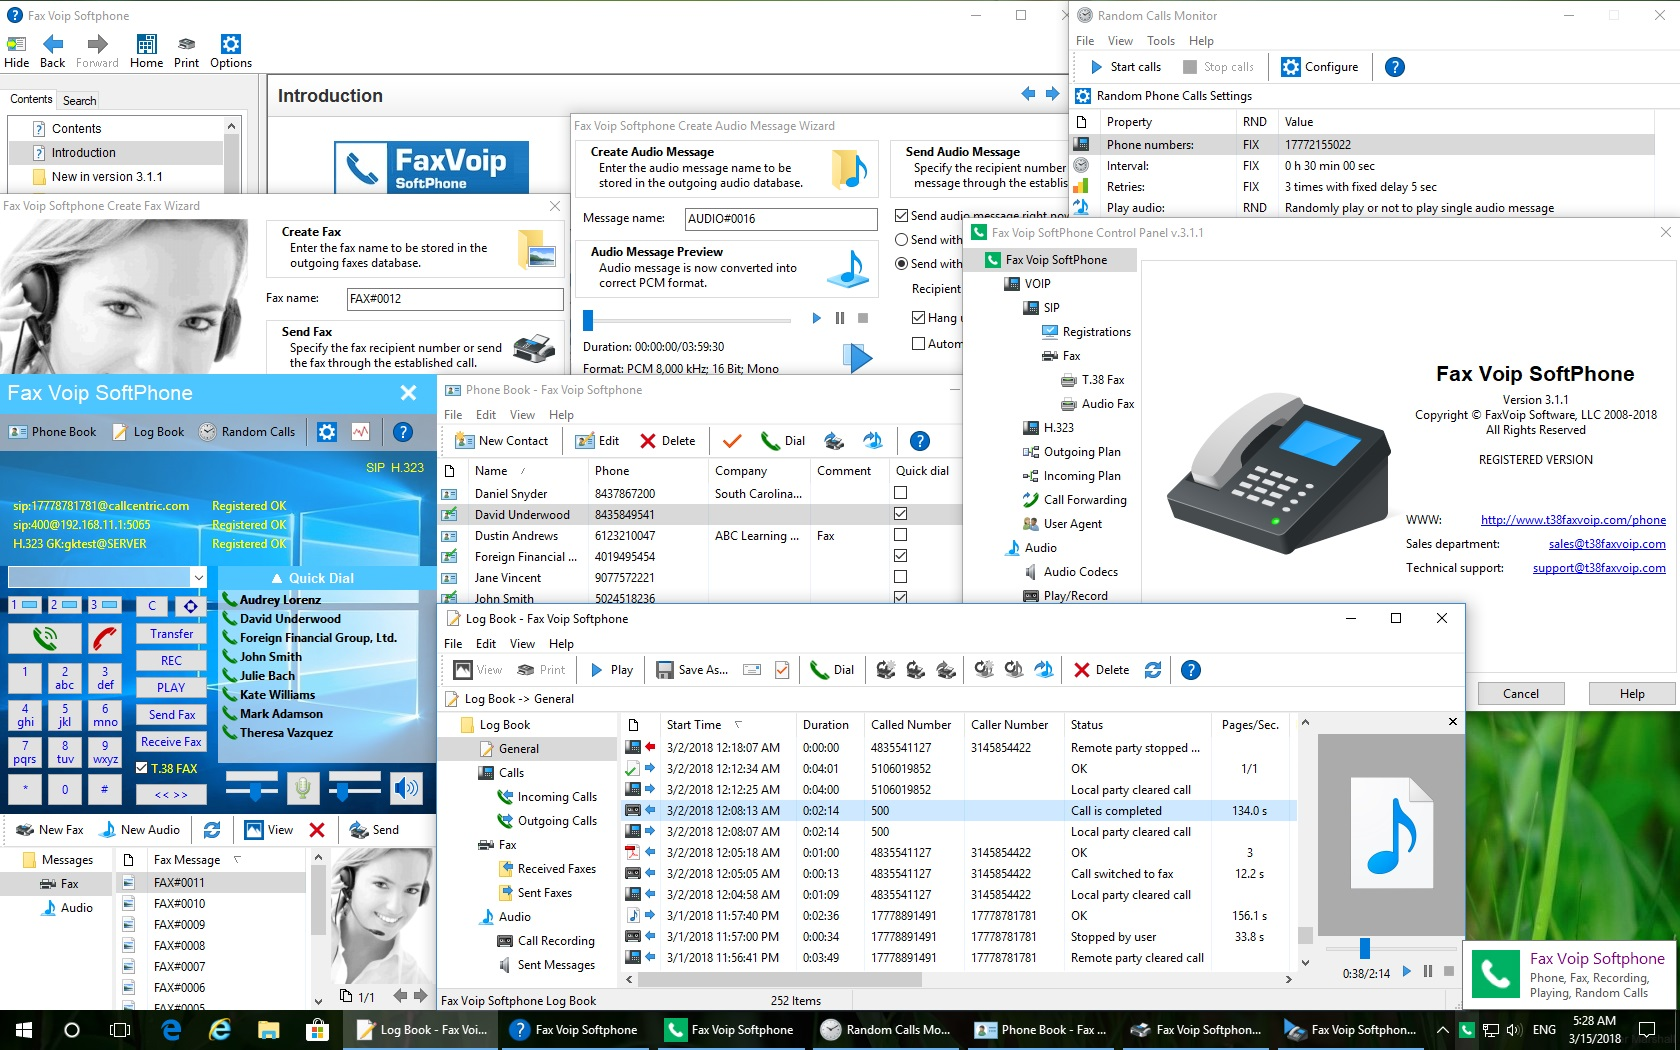 Screenshot of Fax Voip Softphone